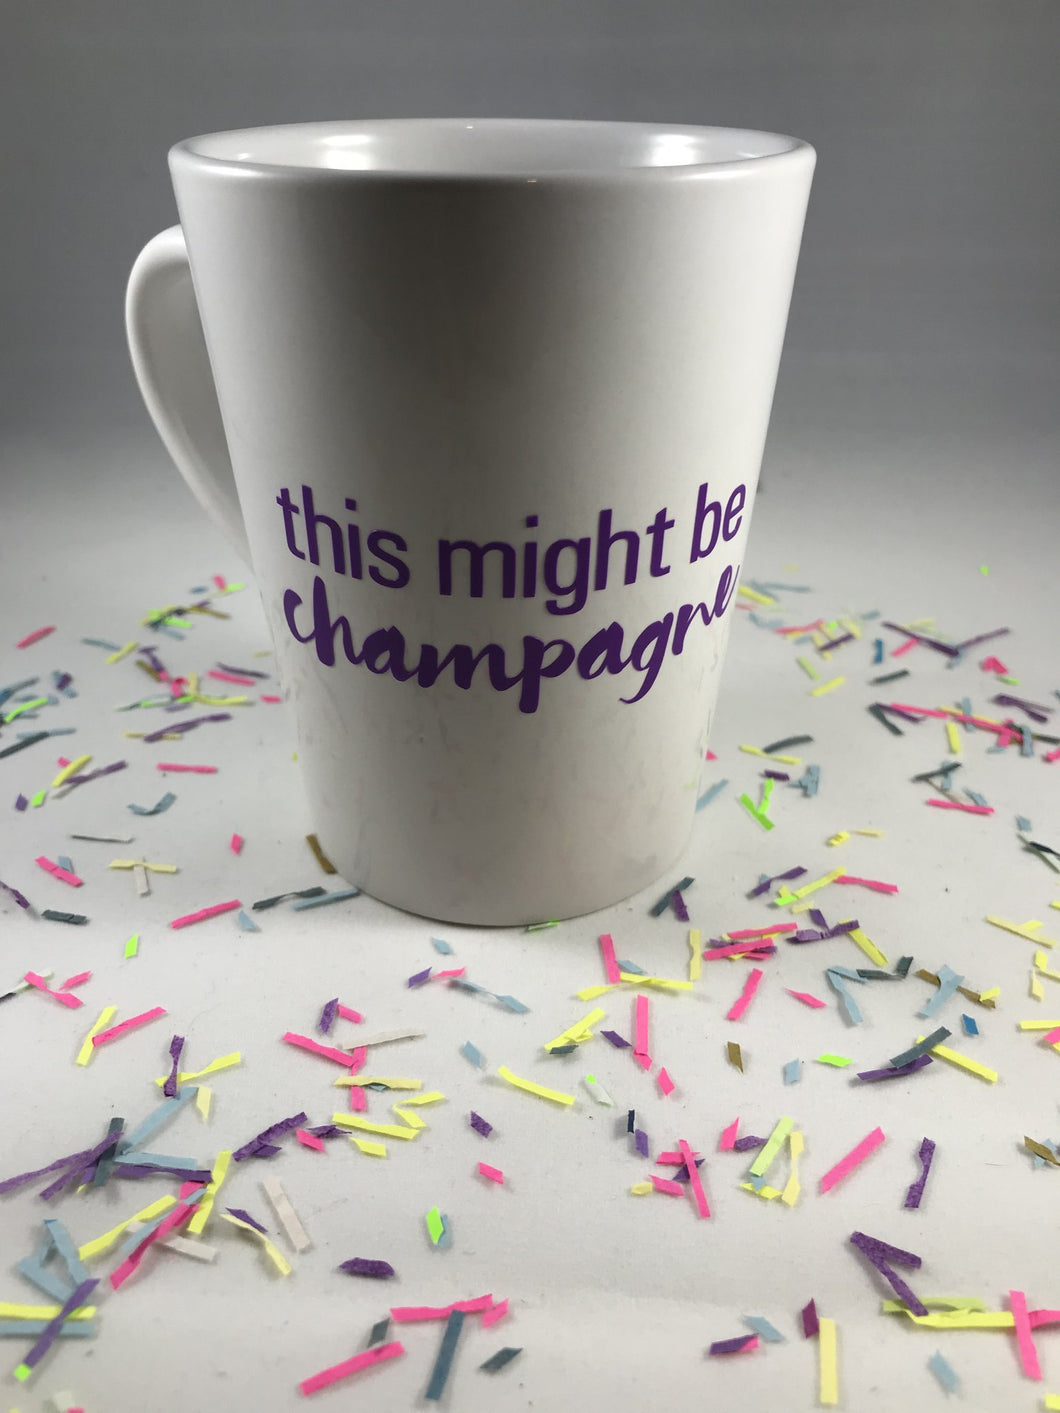 This Might be Champagne Coffee Mug by Salazar Lane